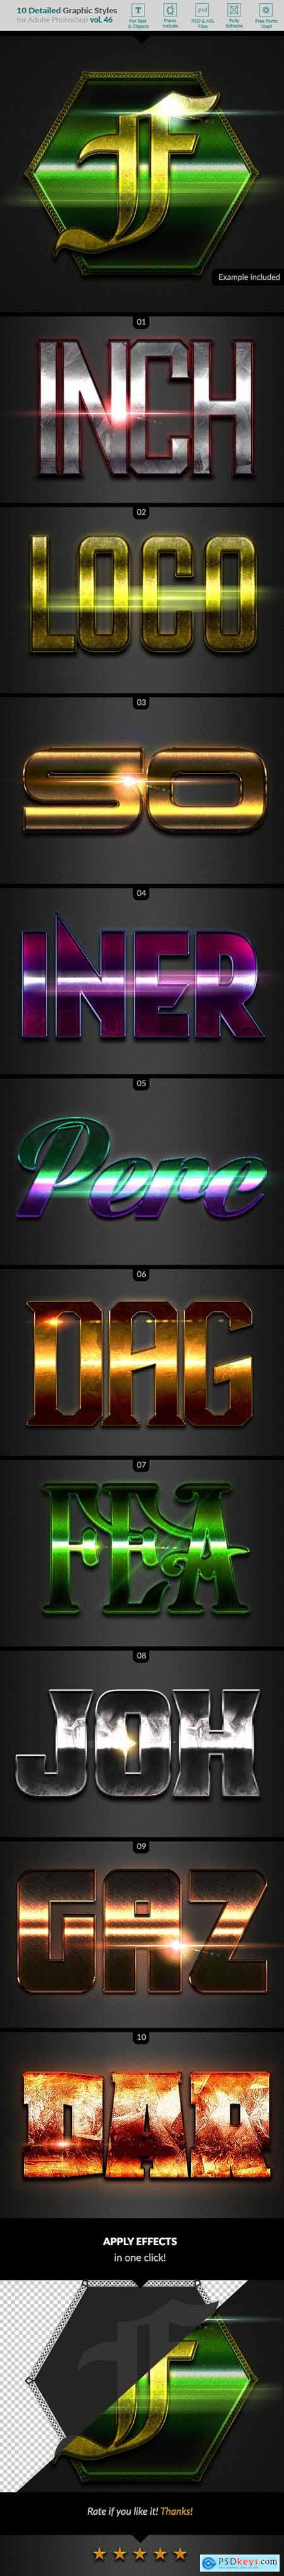 10 Text Effects Vol. 46 25813616